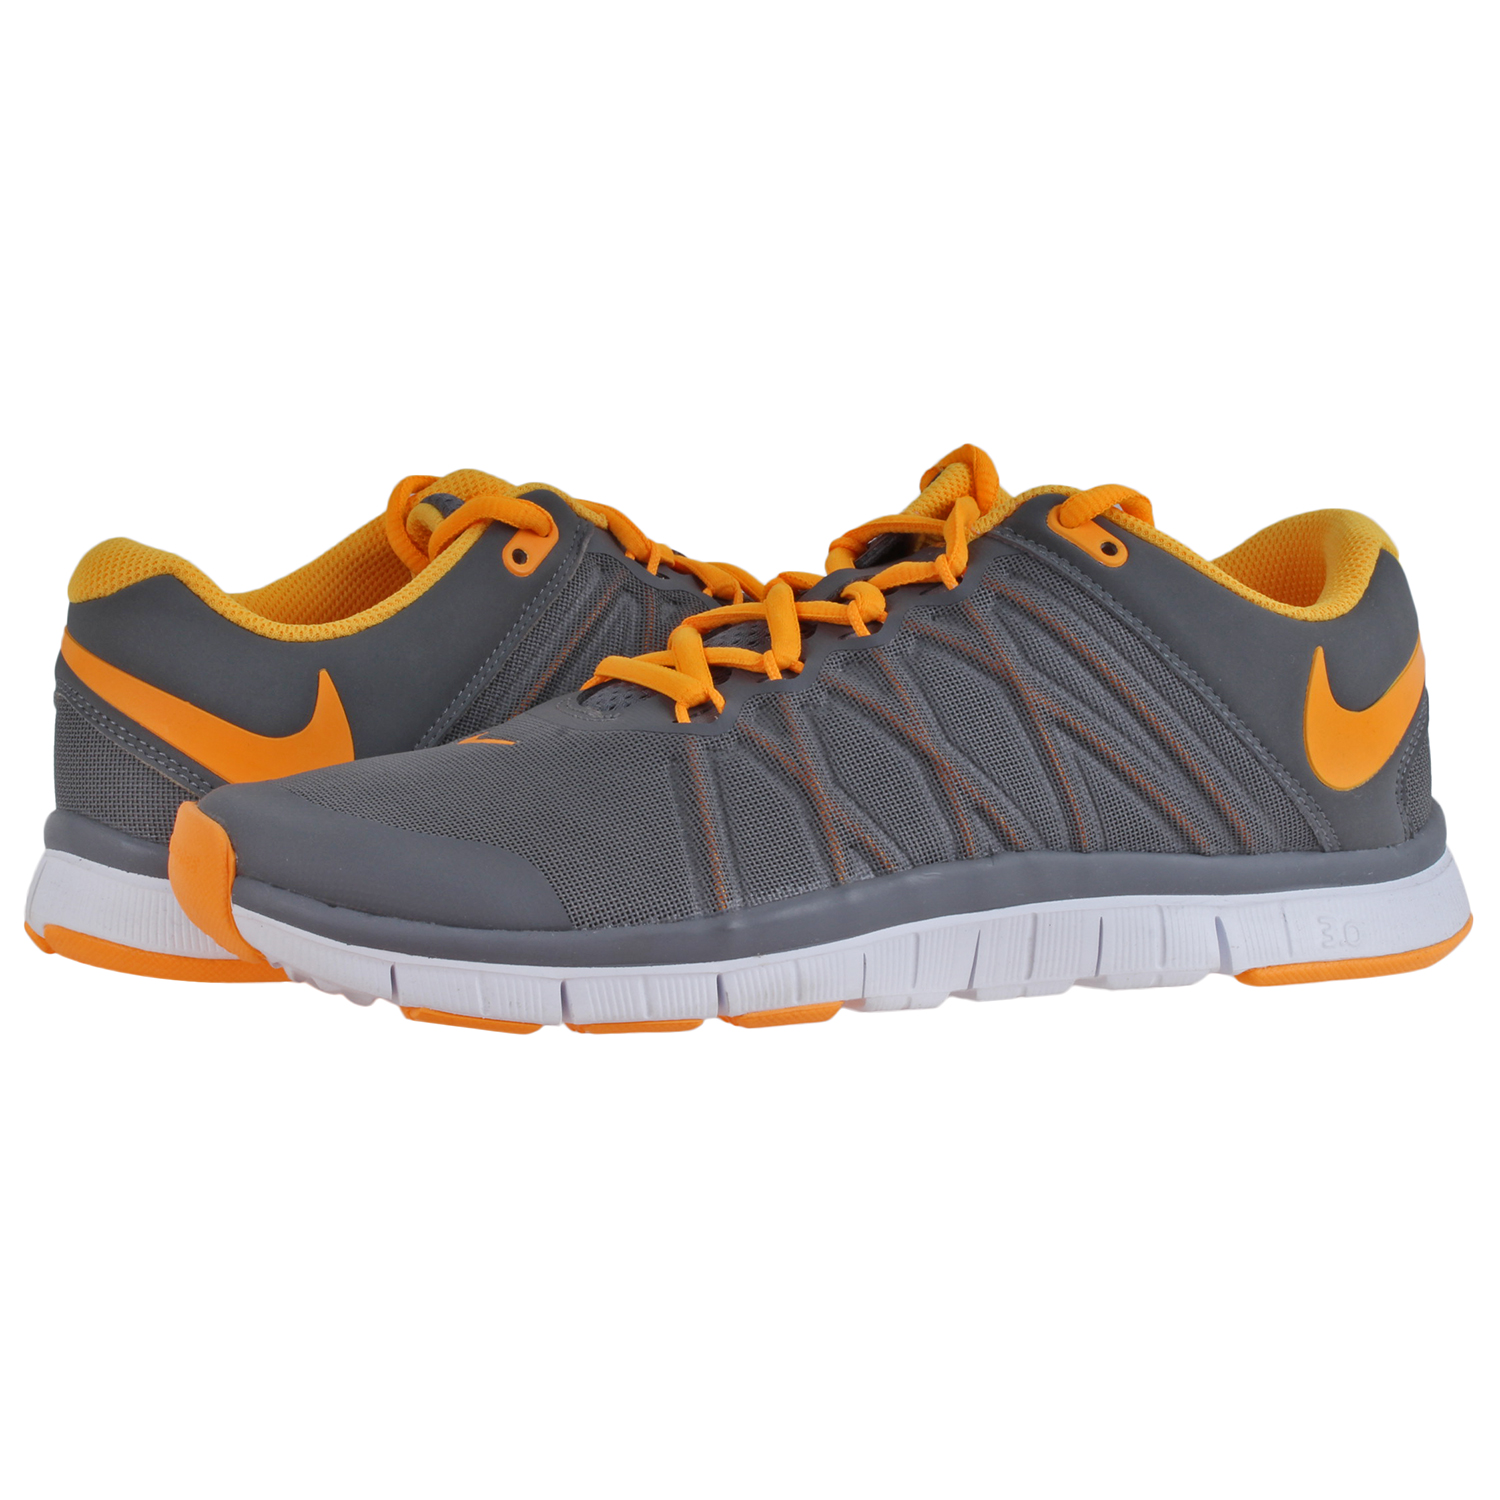 909ee6b43270e Details about Nike Mens Free 3.0 Training Shoes 630856-008-8EY Gry Sz8